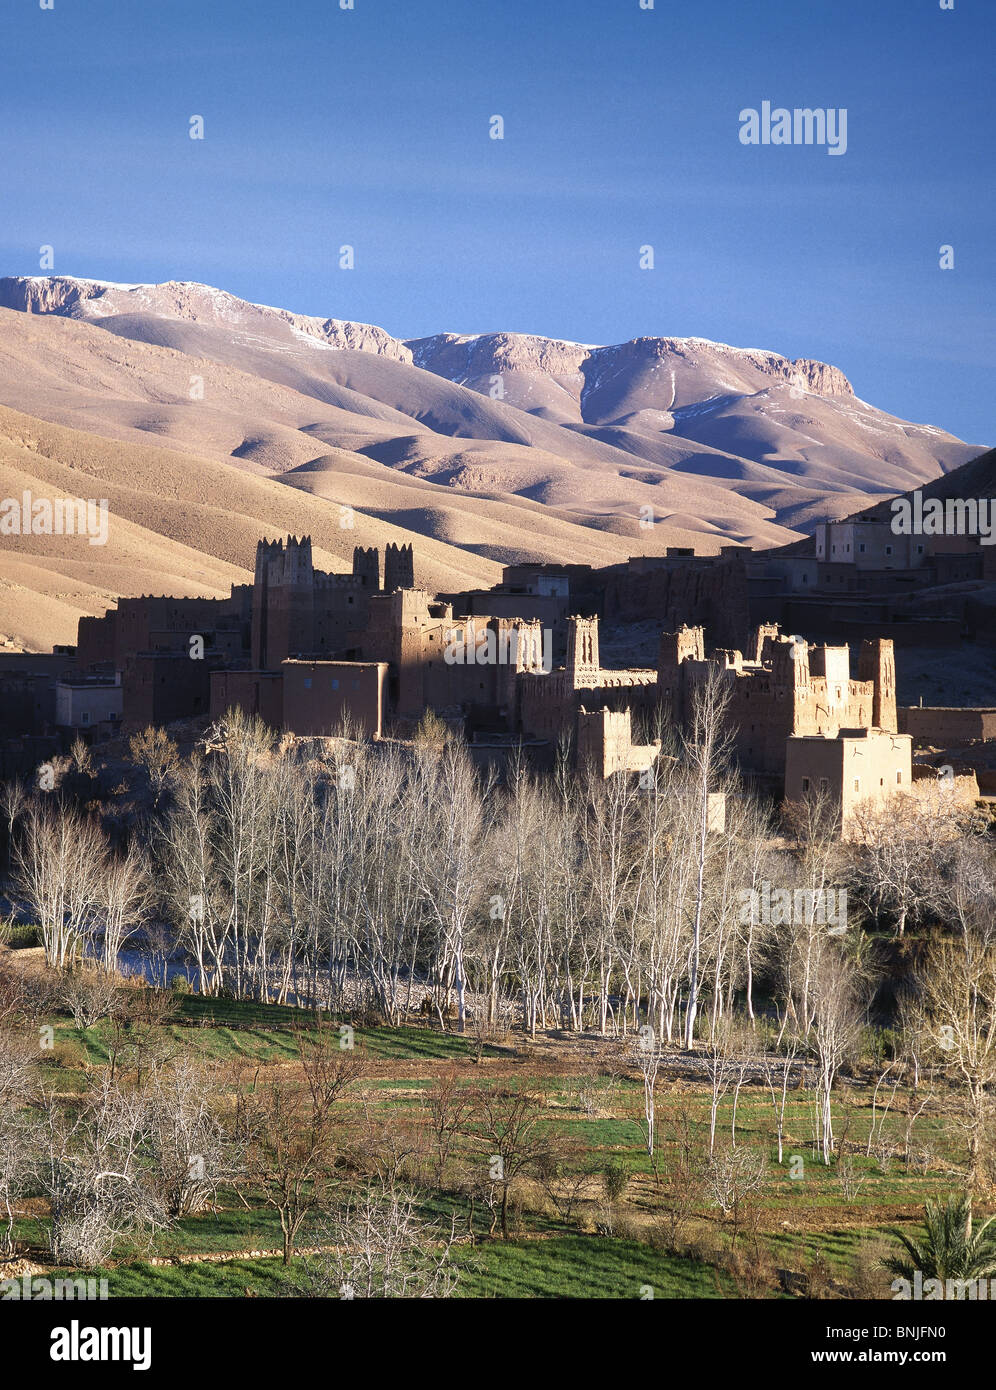 Morocco january 2007 Kasbah at Dades valley Atlas Mountains landscape city old town - Stock Image